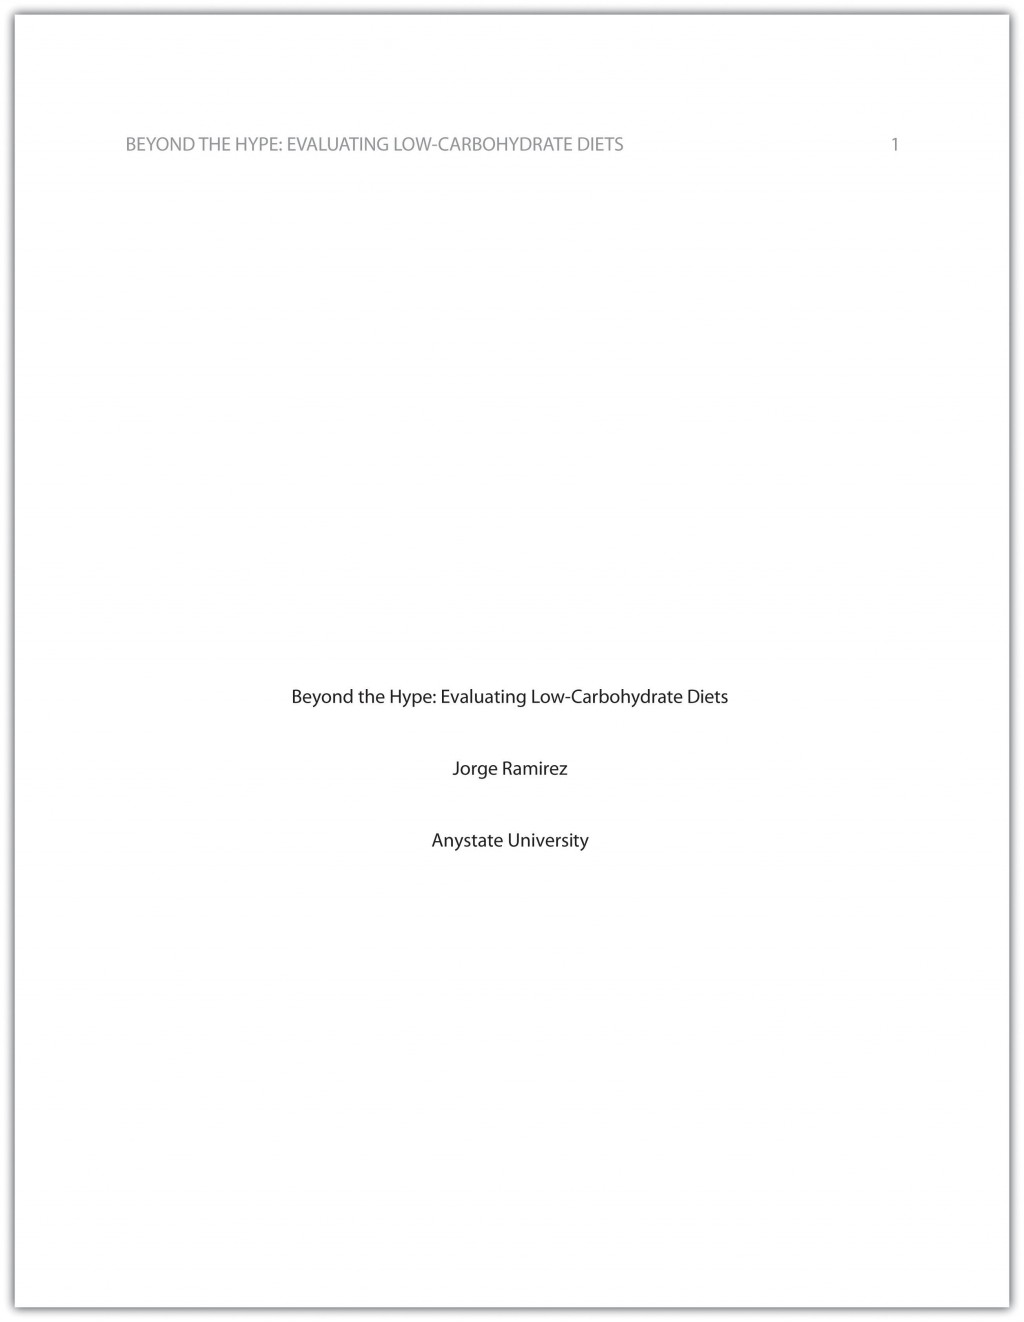 002 Cover Page For Research Paper Apa Format Incredible How To Do A Large